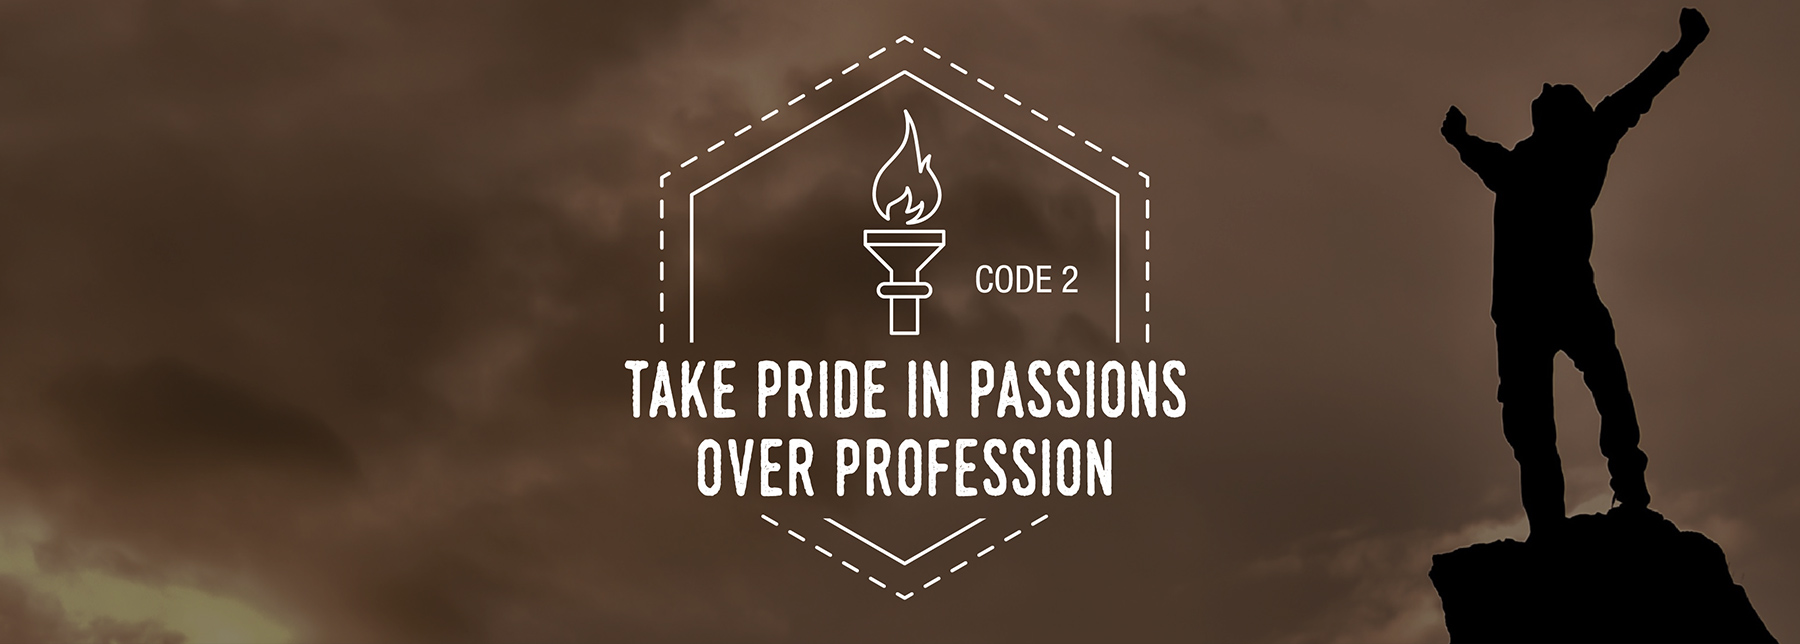 Code 2: Take Pride In Passions Over Professions